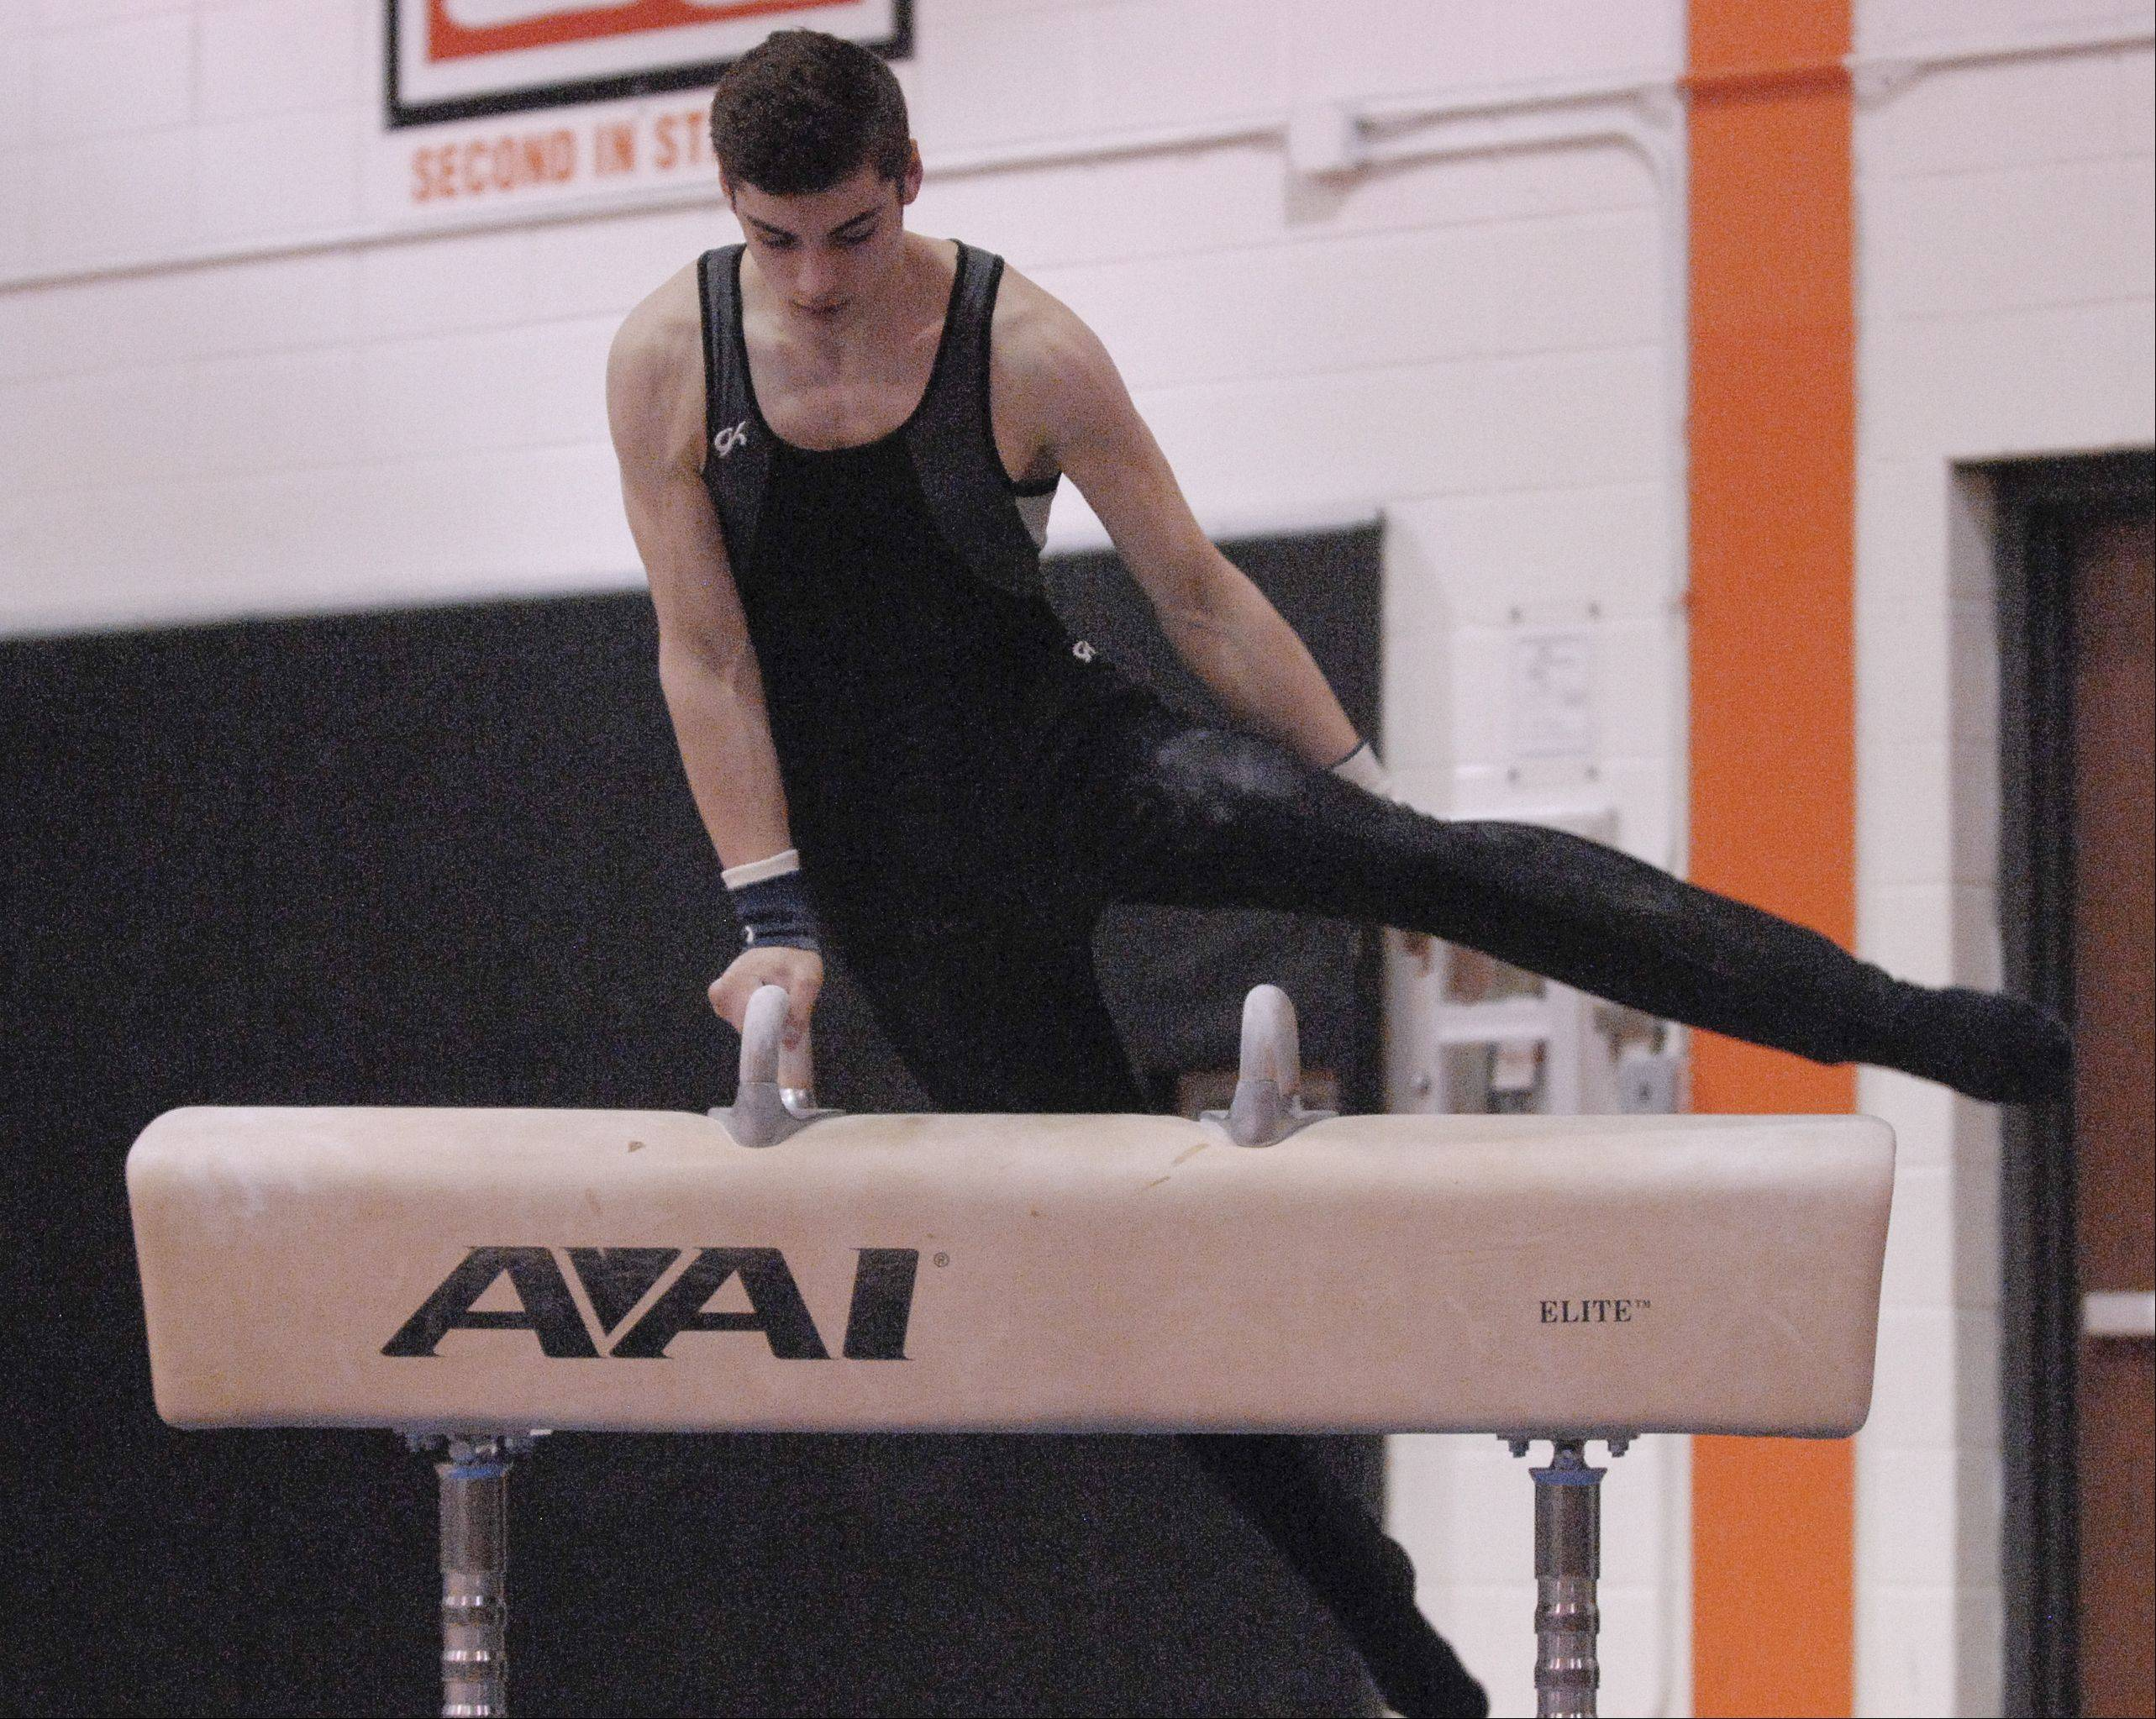 Bret Golz of Willowbrook performs on the Pommel Horse during the Wheaton Warrenville South boys gymnastics sectional, Wednesday.